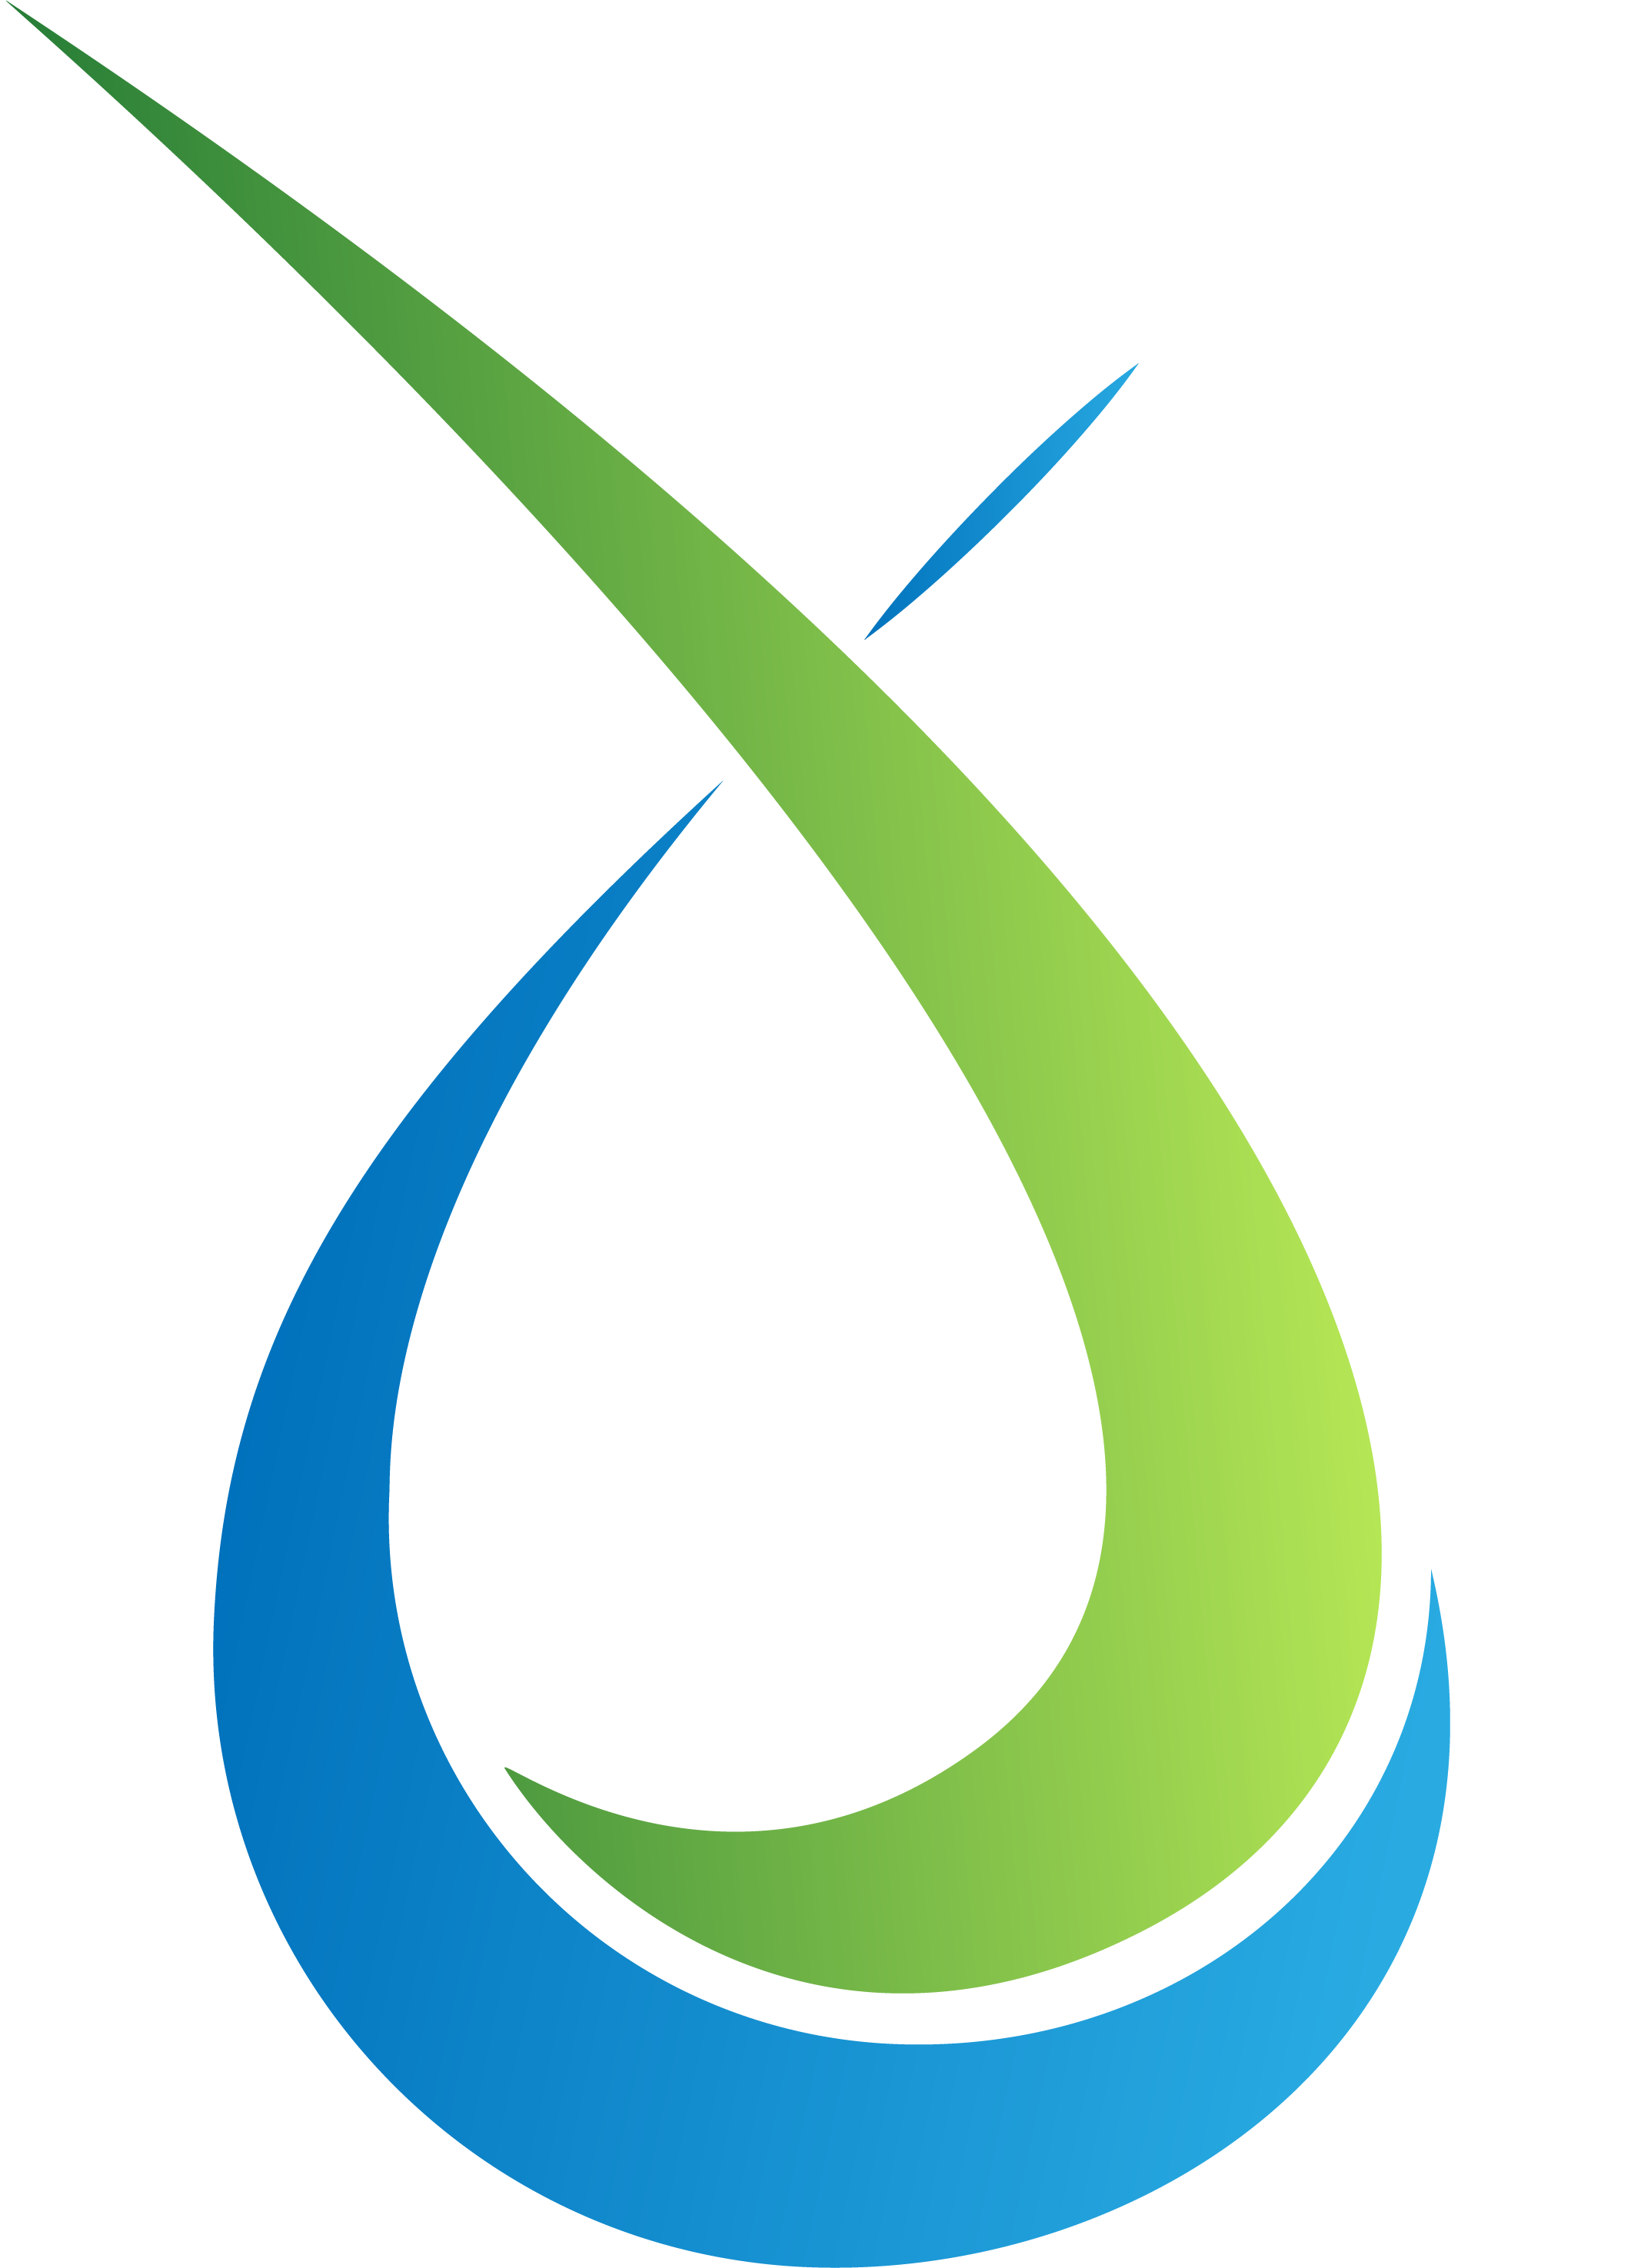 Eco Png - File:Eco-Runner Team Delft Logo.png - Wikipedia